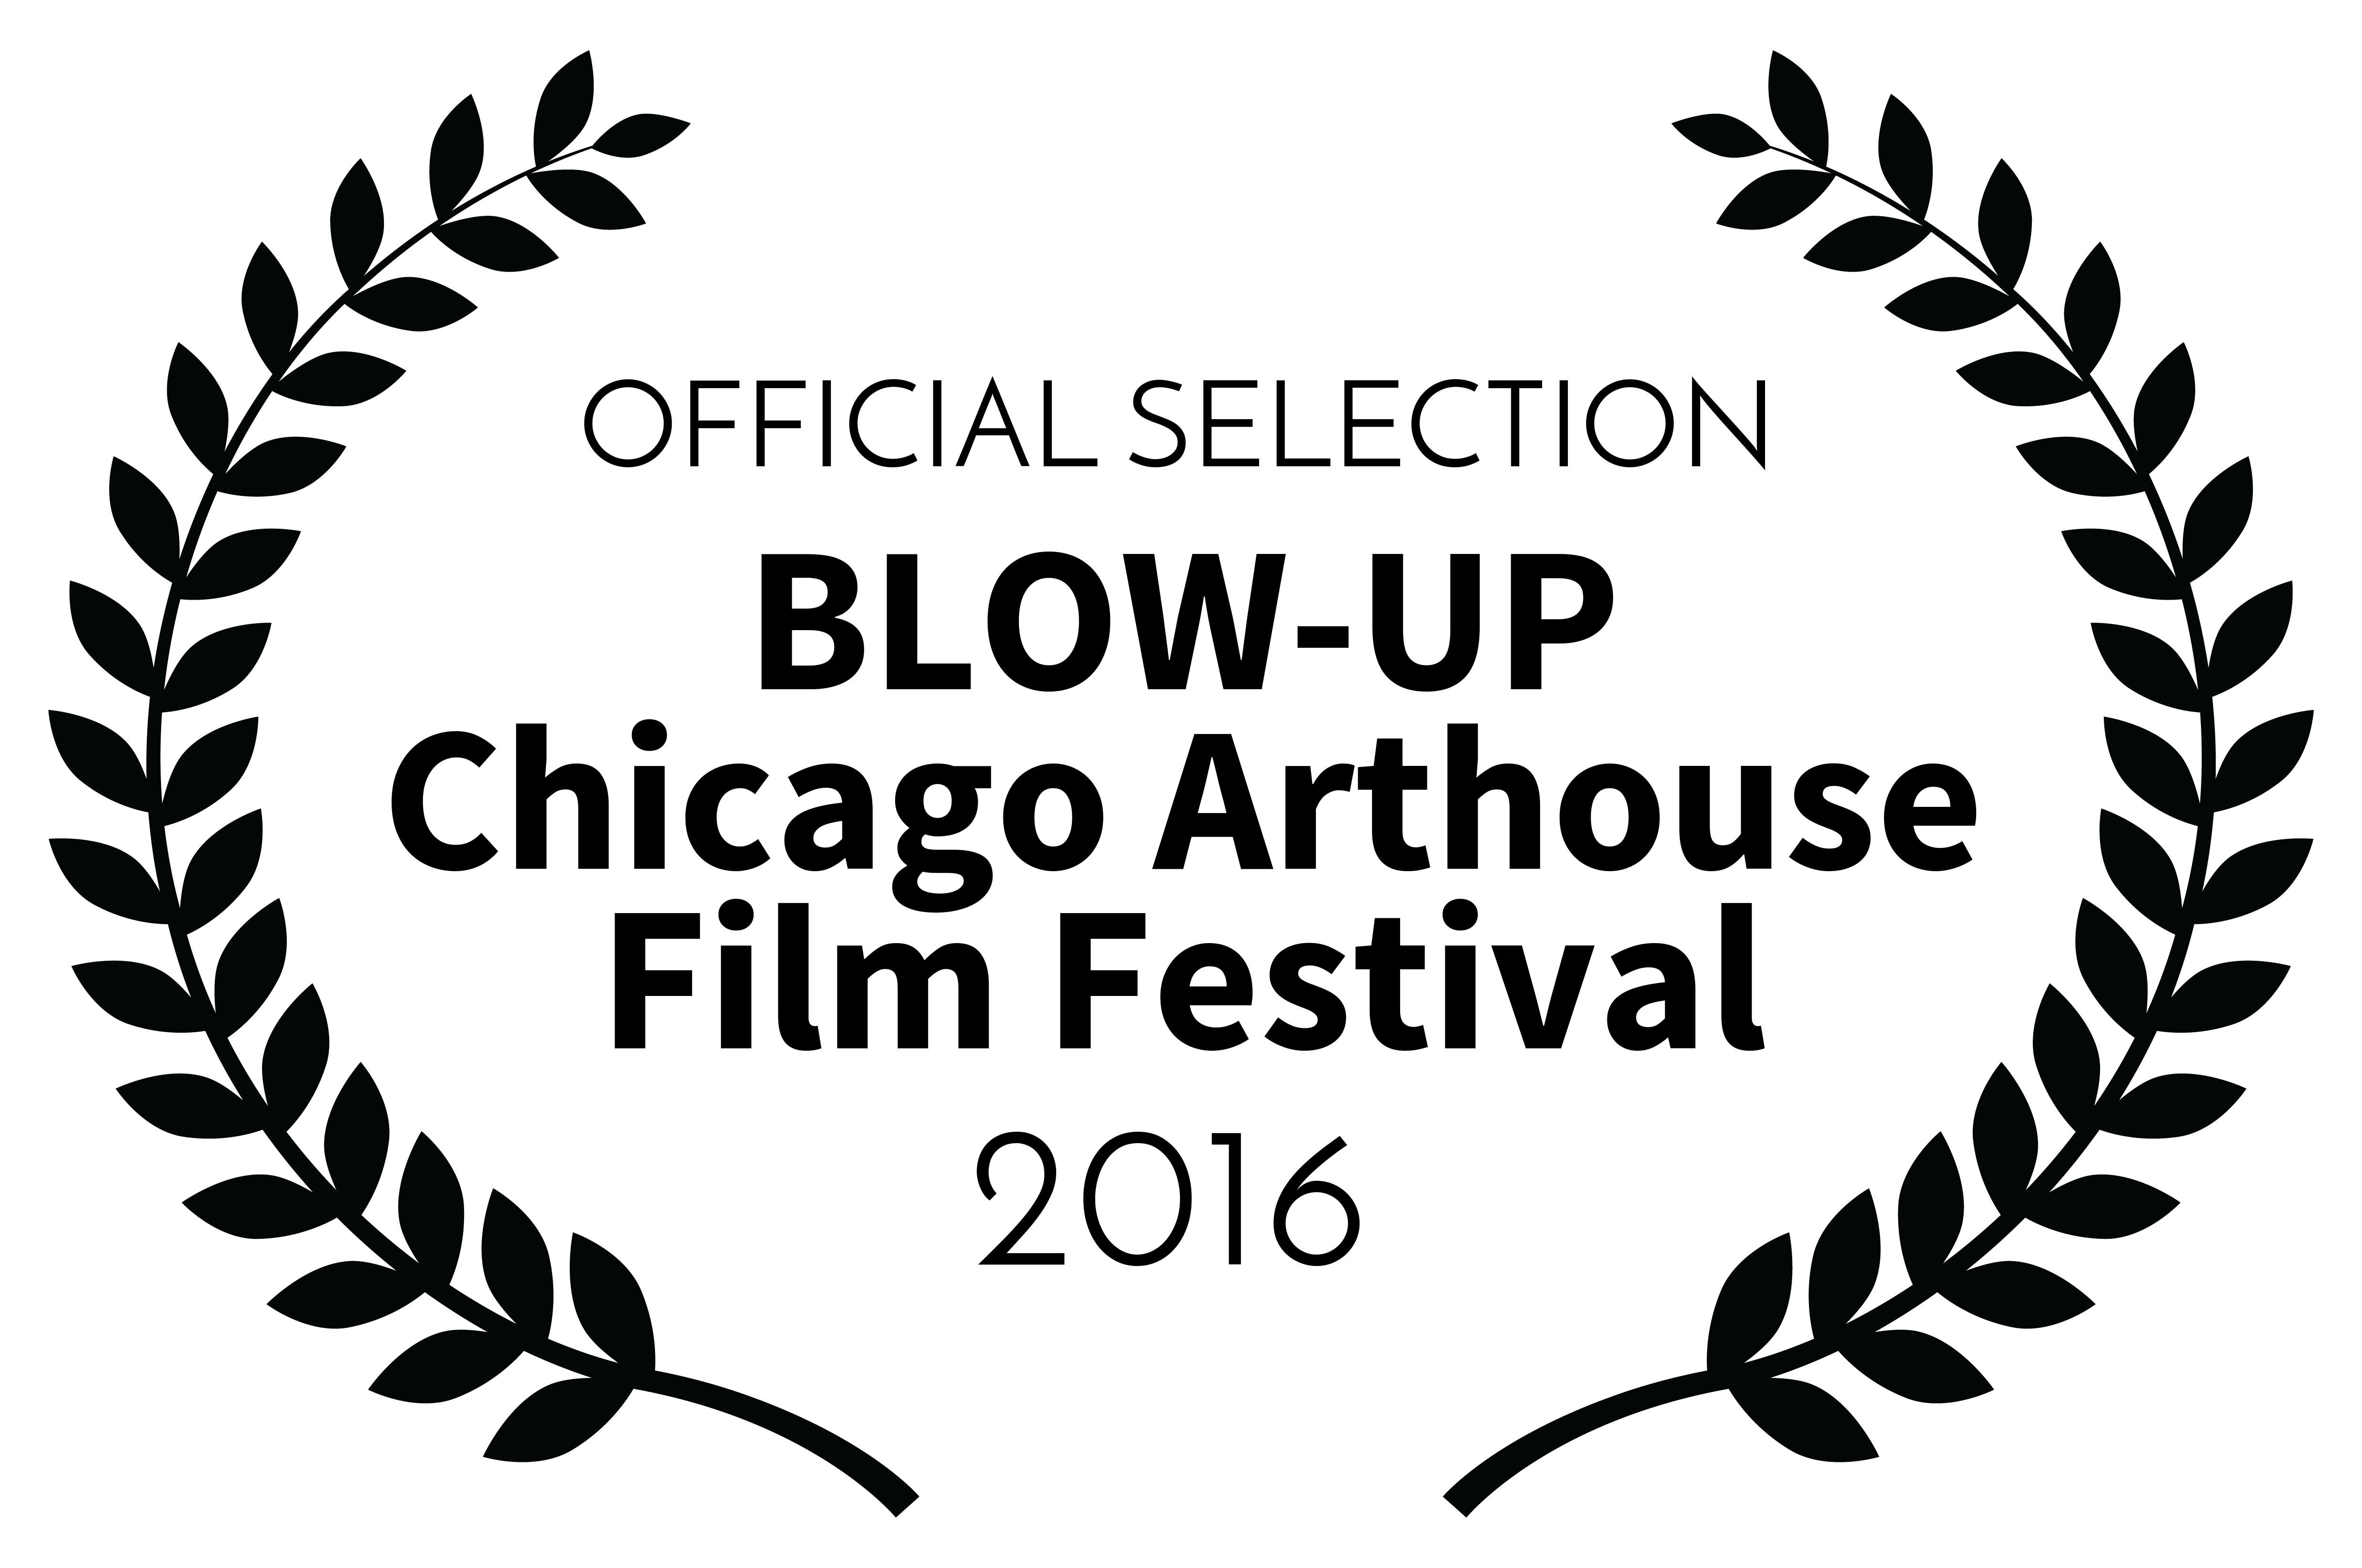 OFFICIALSELECTION-BLOW-UPChicagoArthouseFilmFestival-2016